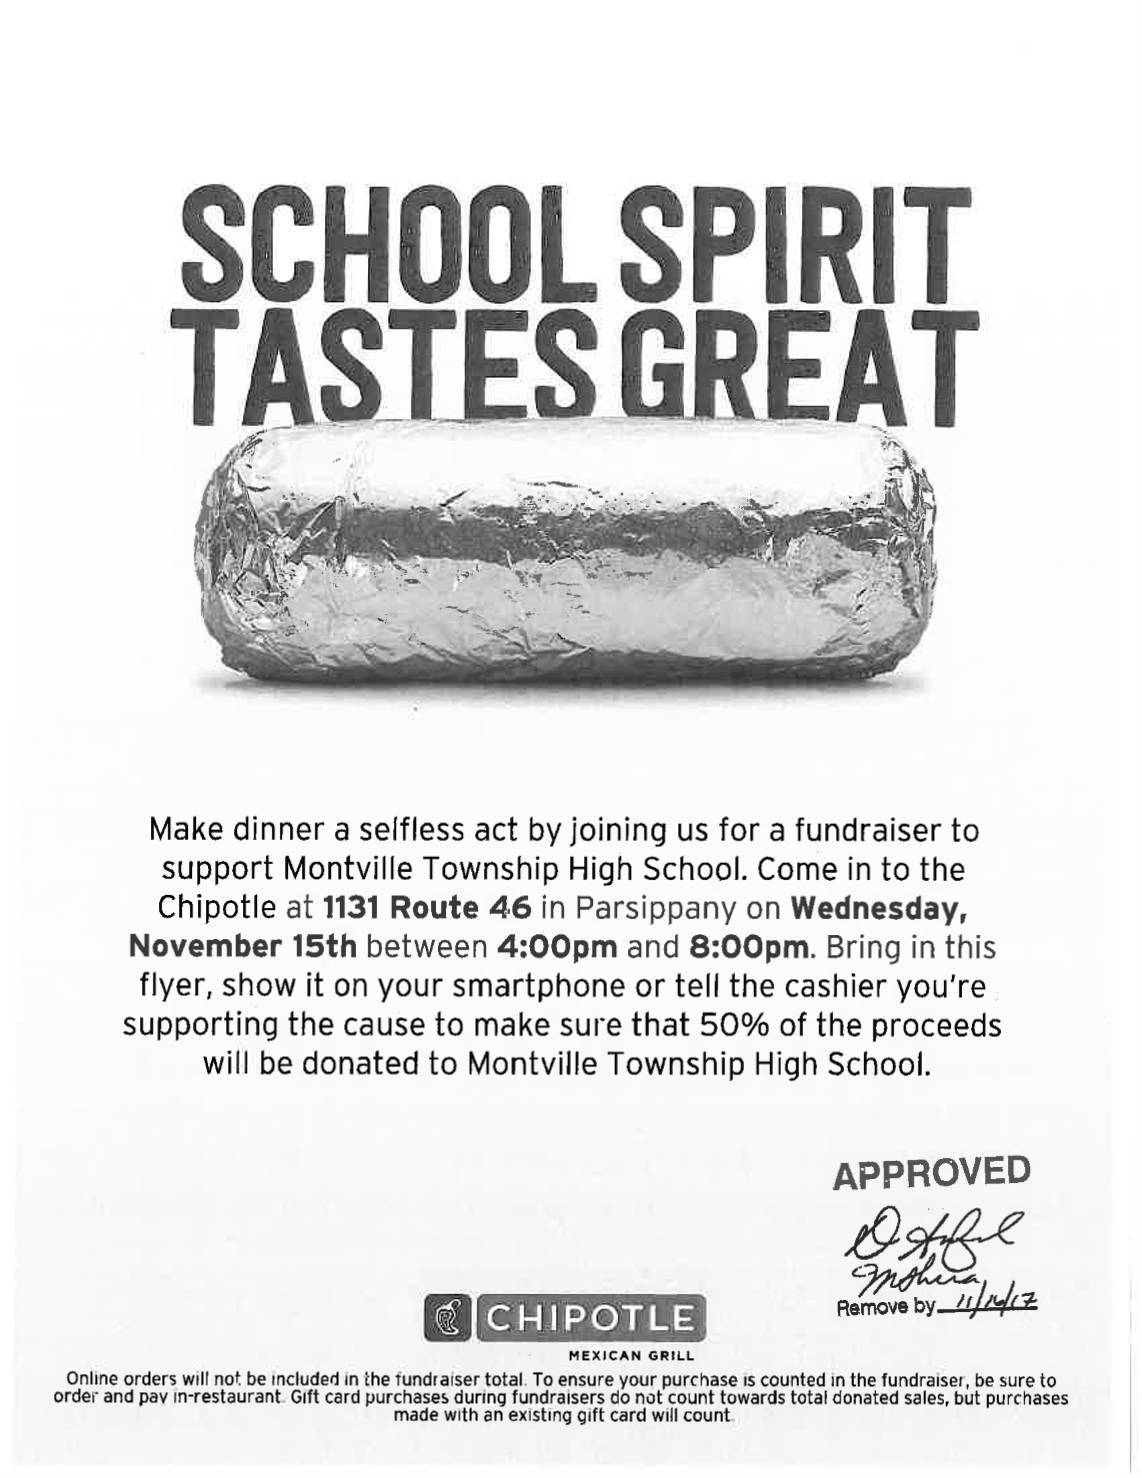 99cff6385cc152475174_Class_of_2021_Fundraiser_at_Chipotle.jpg